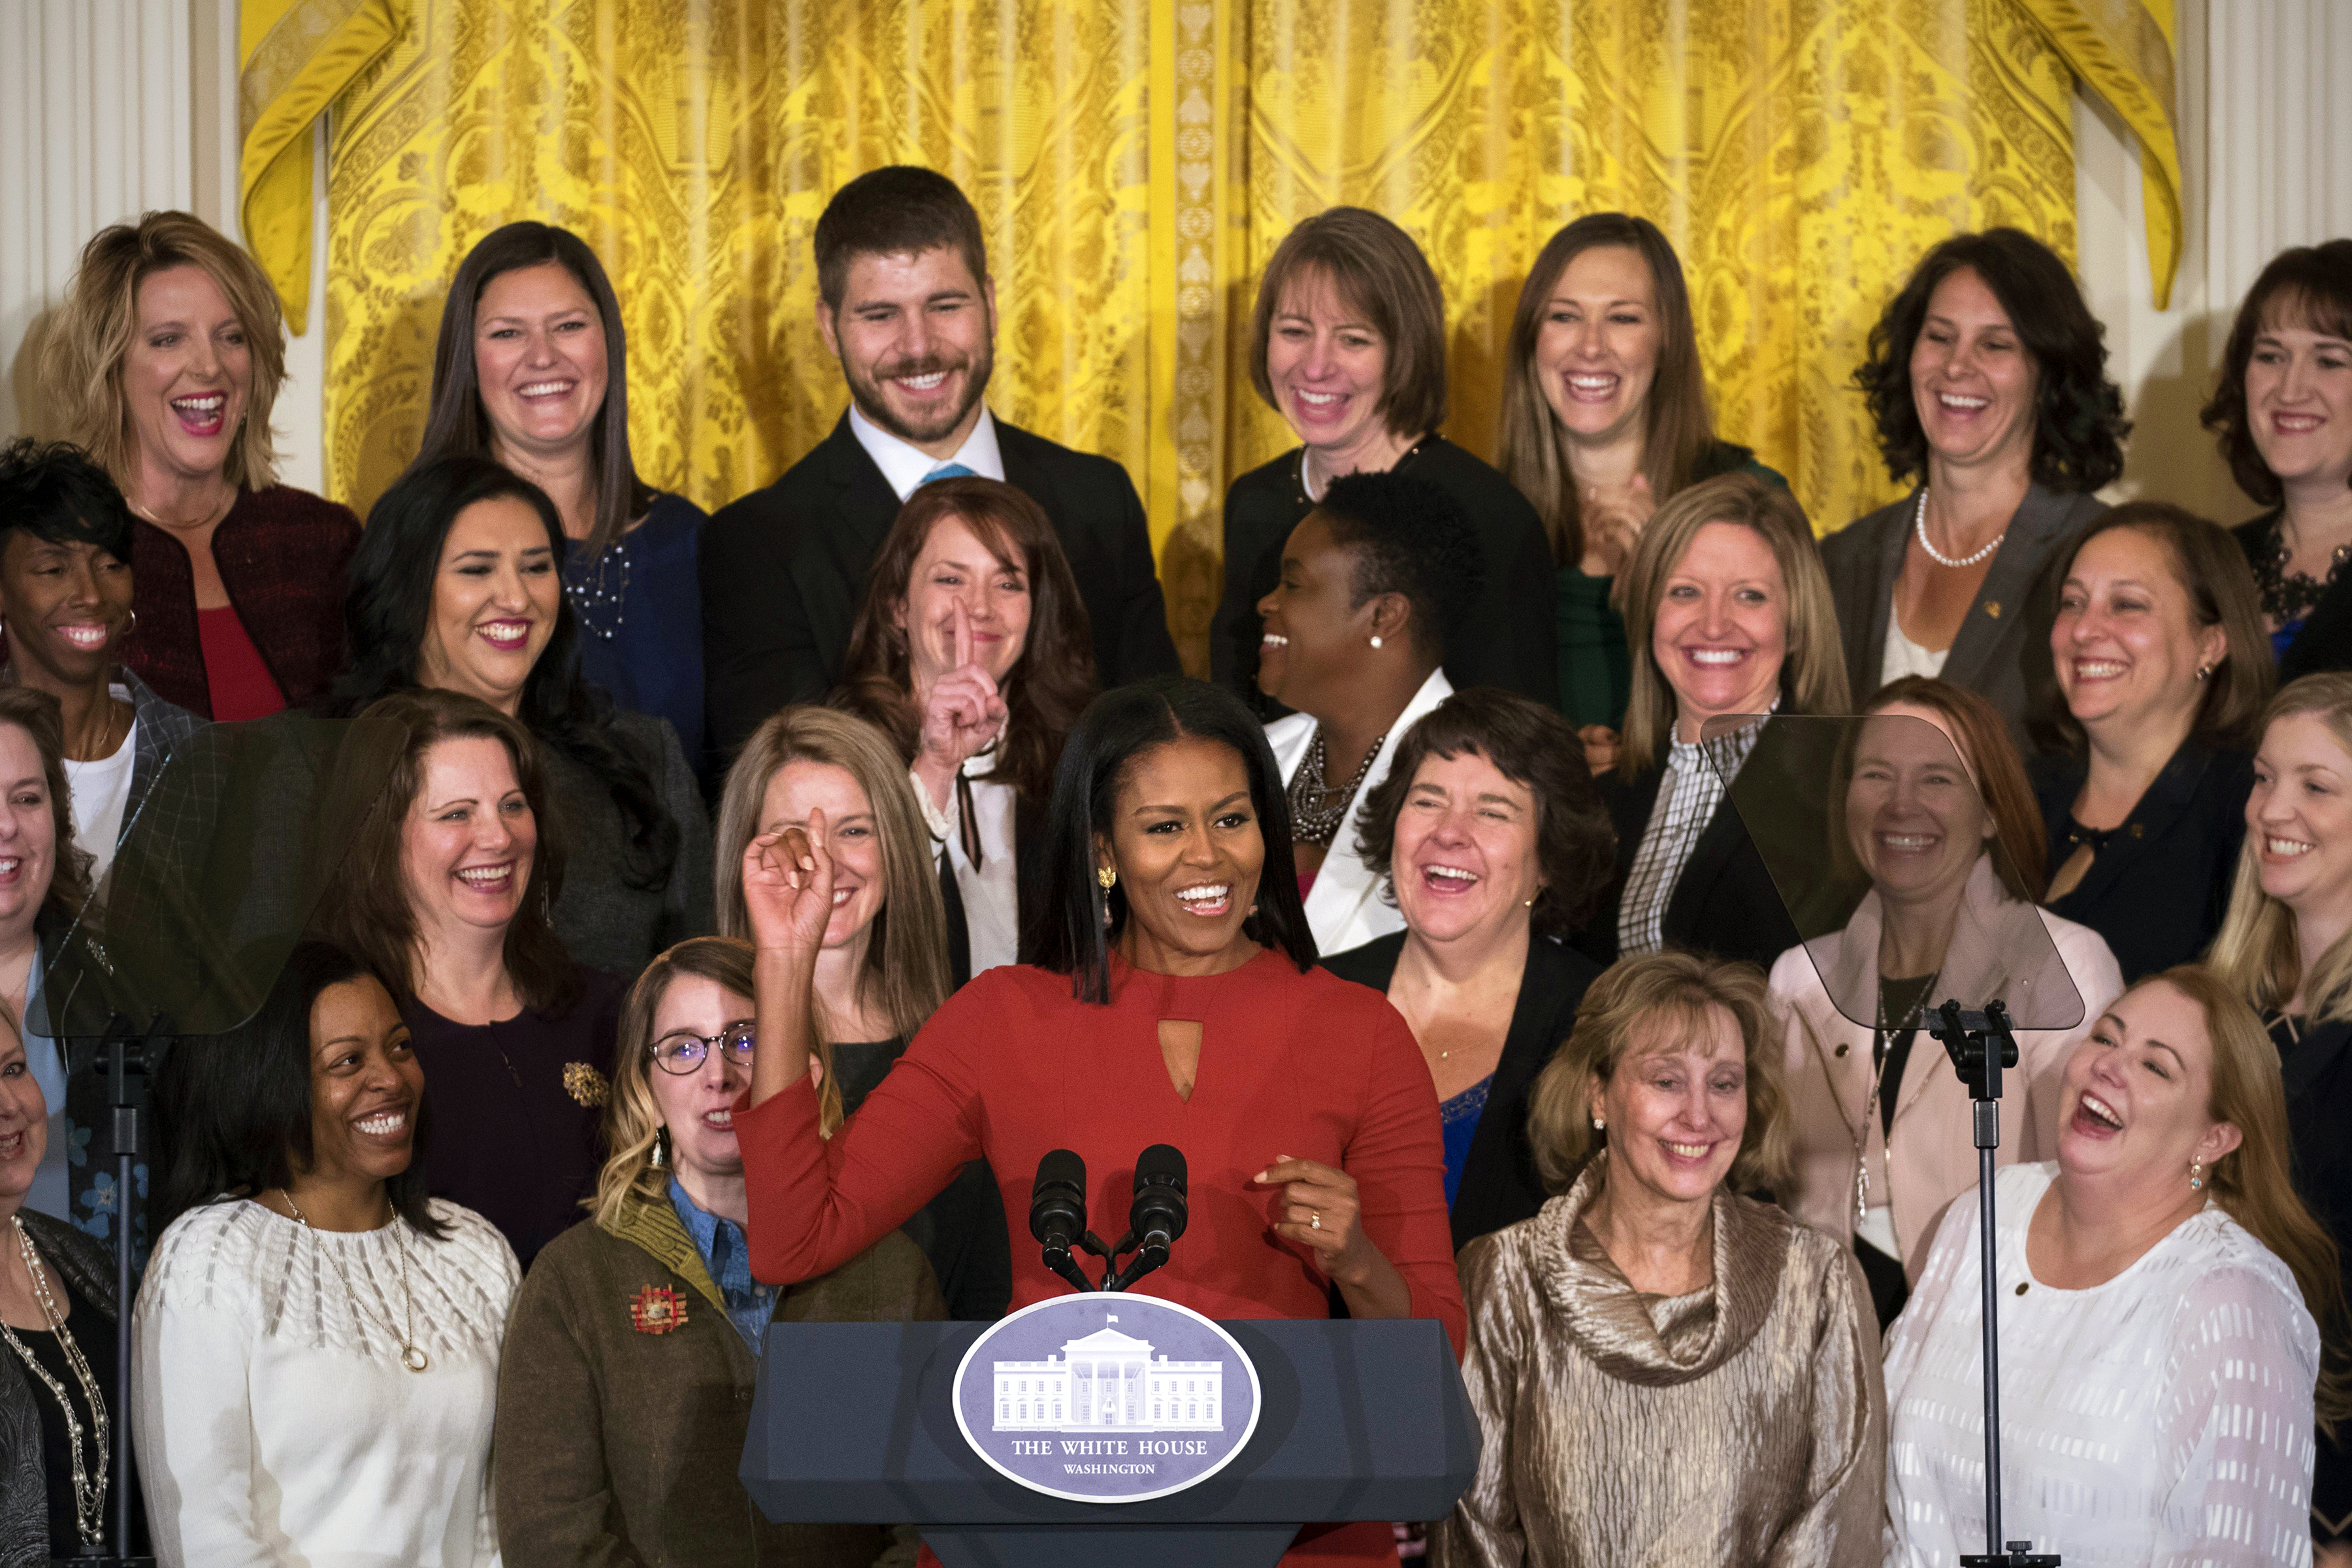 Michelle Obama in Narciso Rodriguez for her last official event as First Lady.